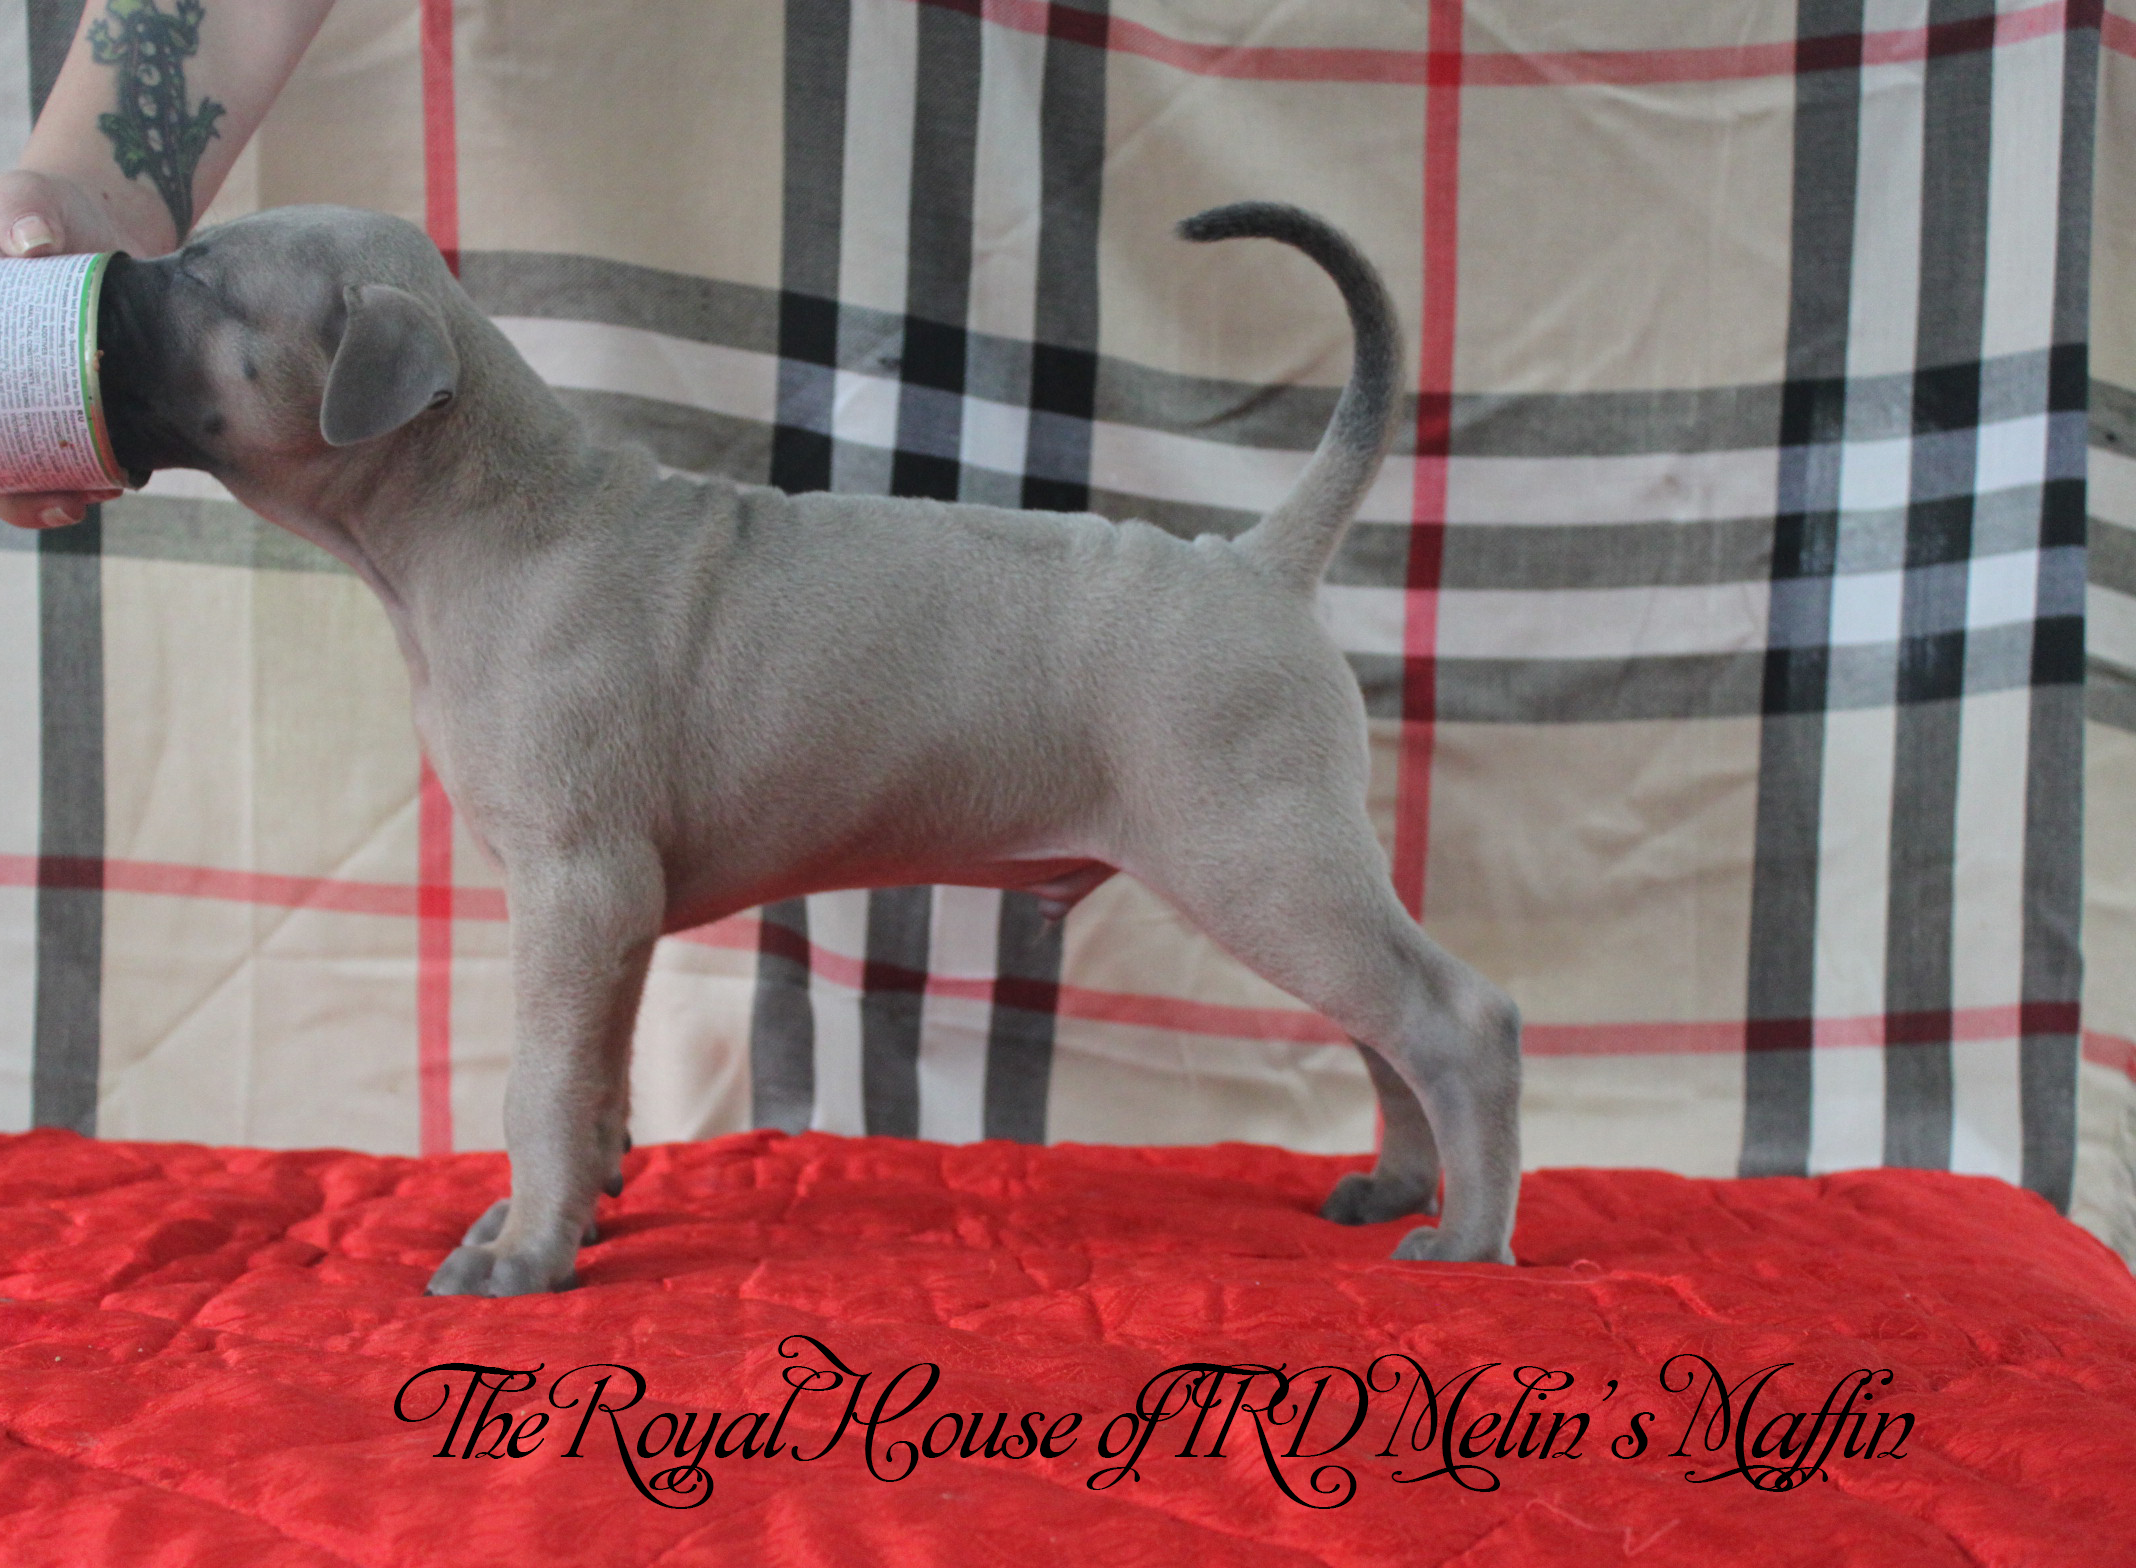 The Royal House of TRD Melins Maffin